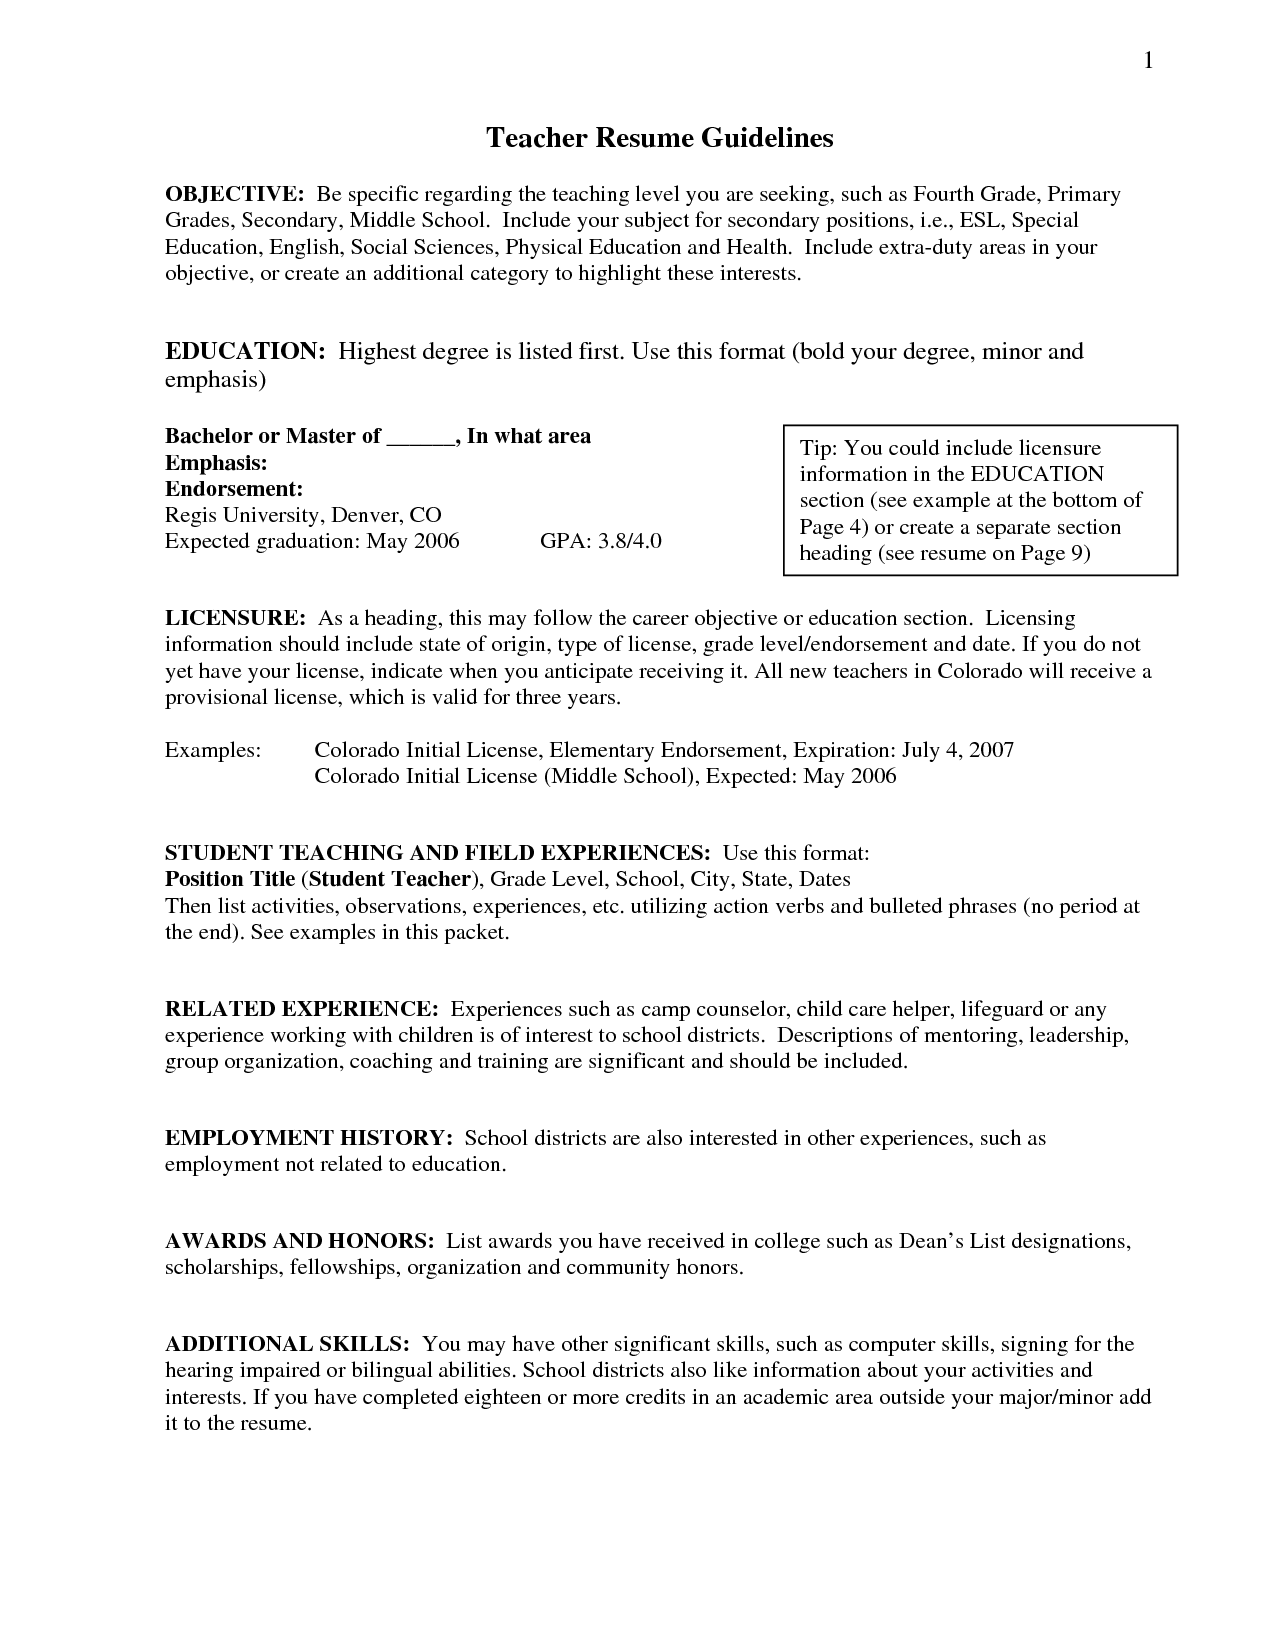 Resumes For Teachers Resumesau